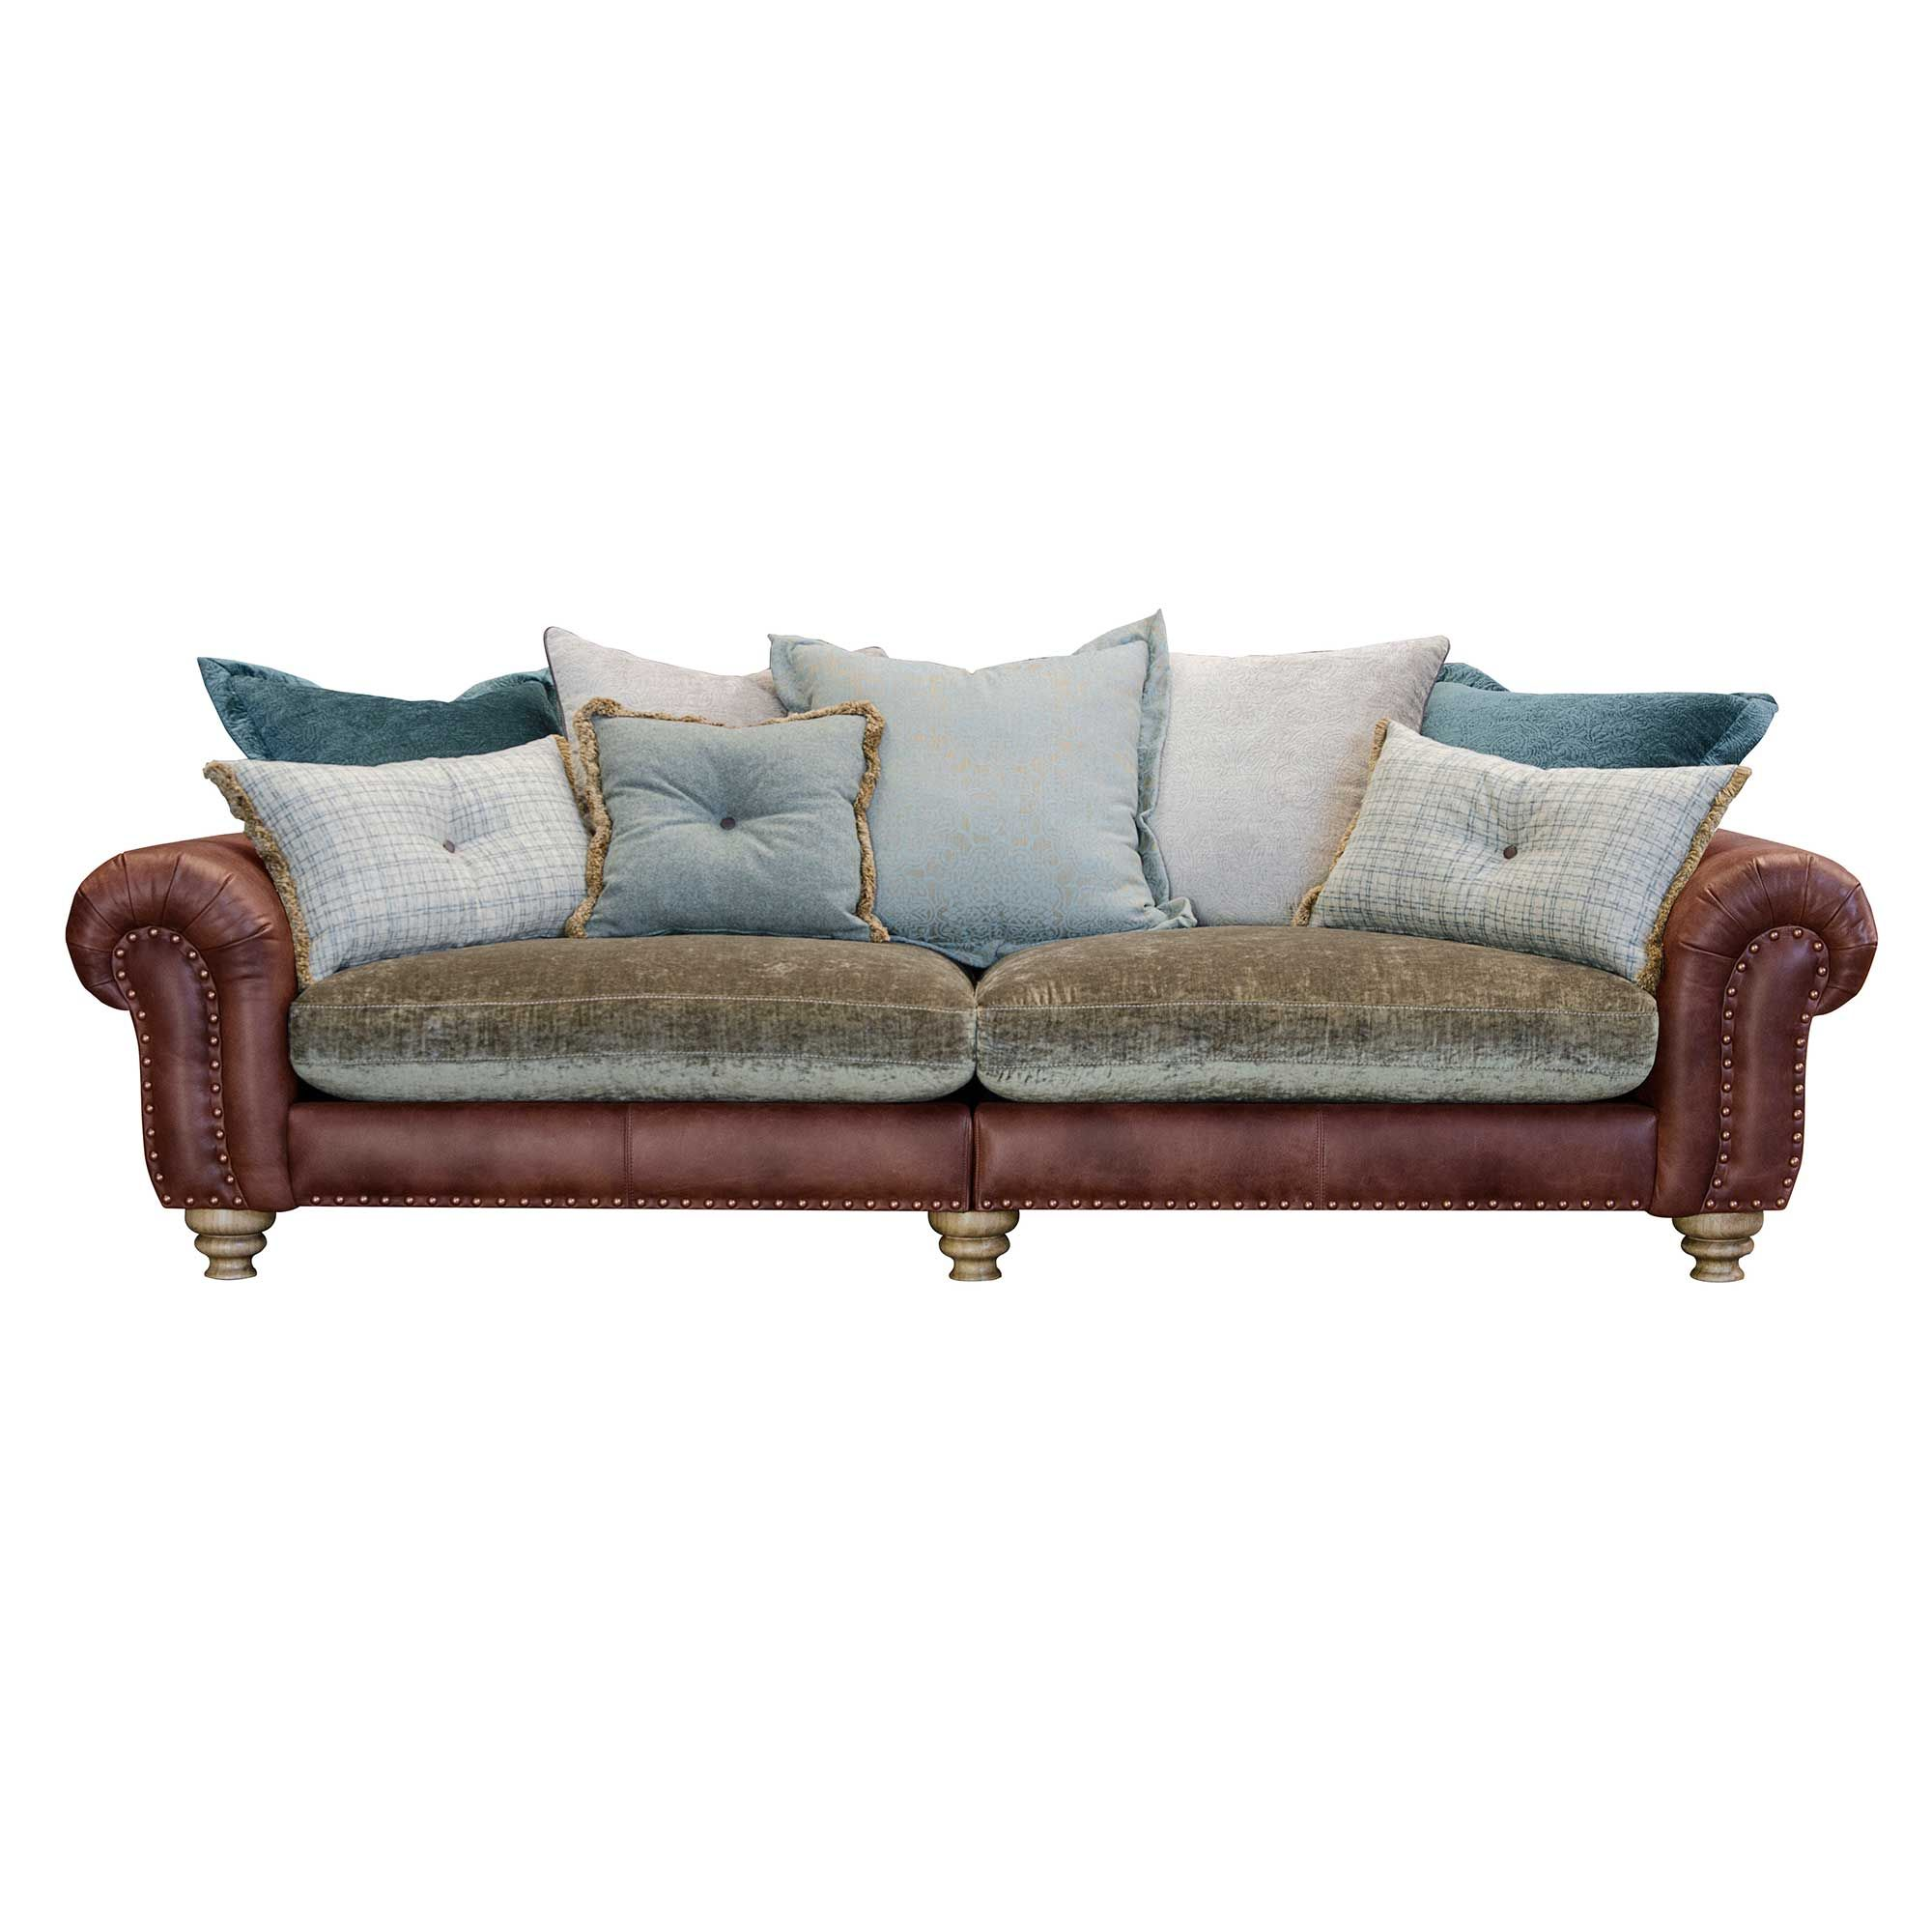 Dorchester Grand Split Pillow Back Sofa Leather And Fabric Mix Sofas Living Room Sofa Couch Fabric Free Couch